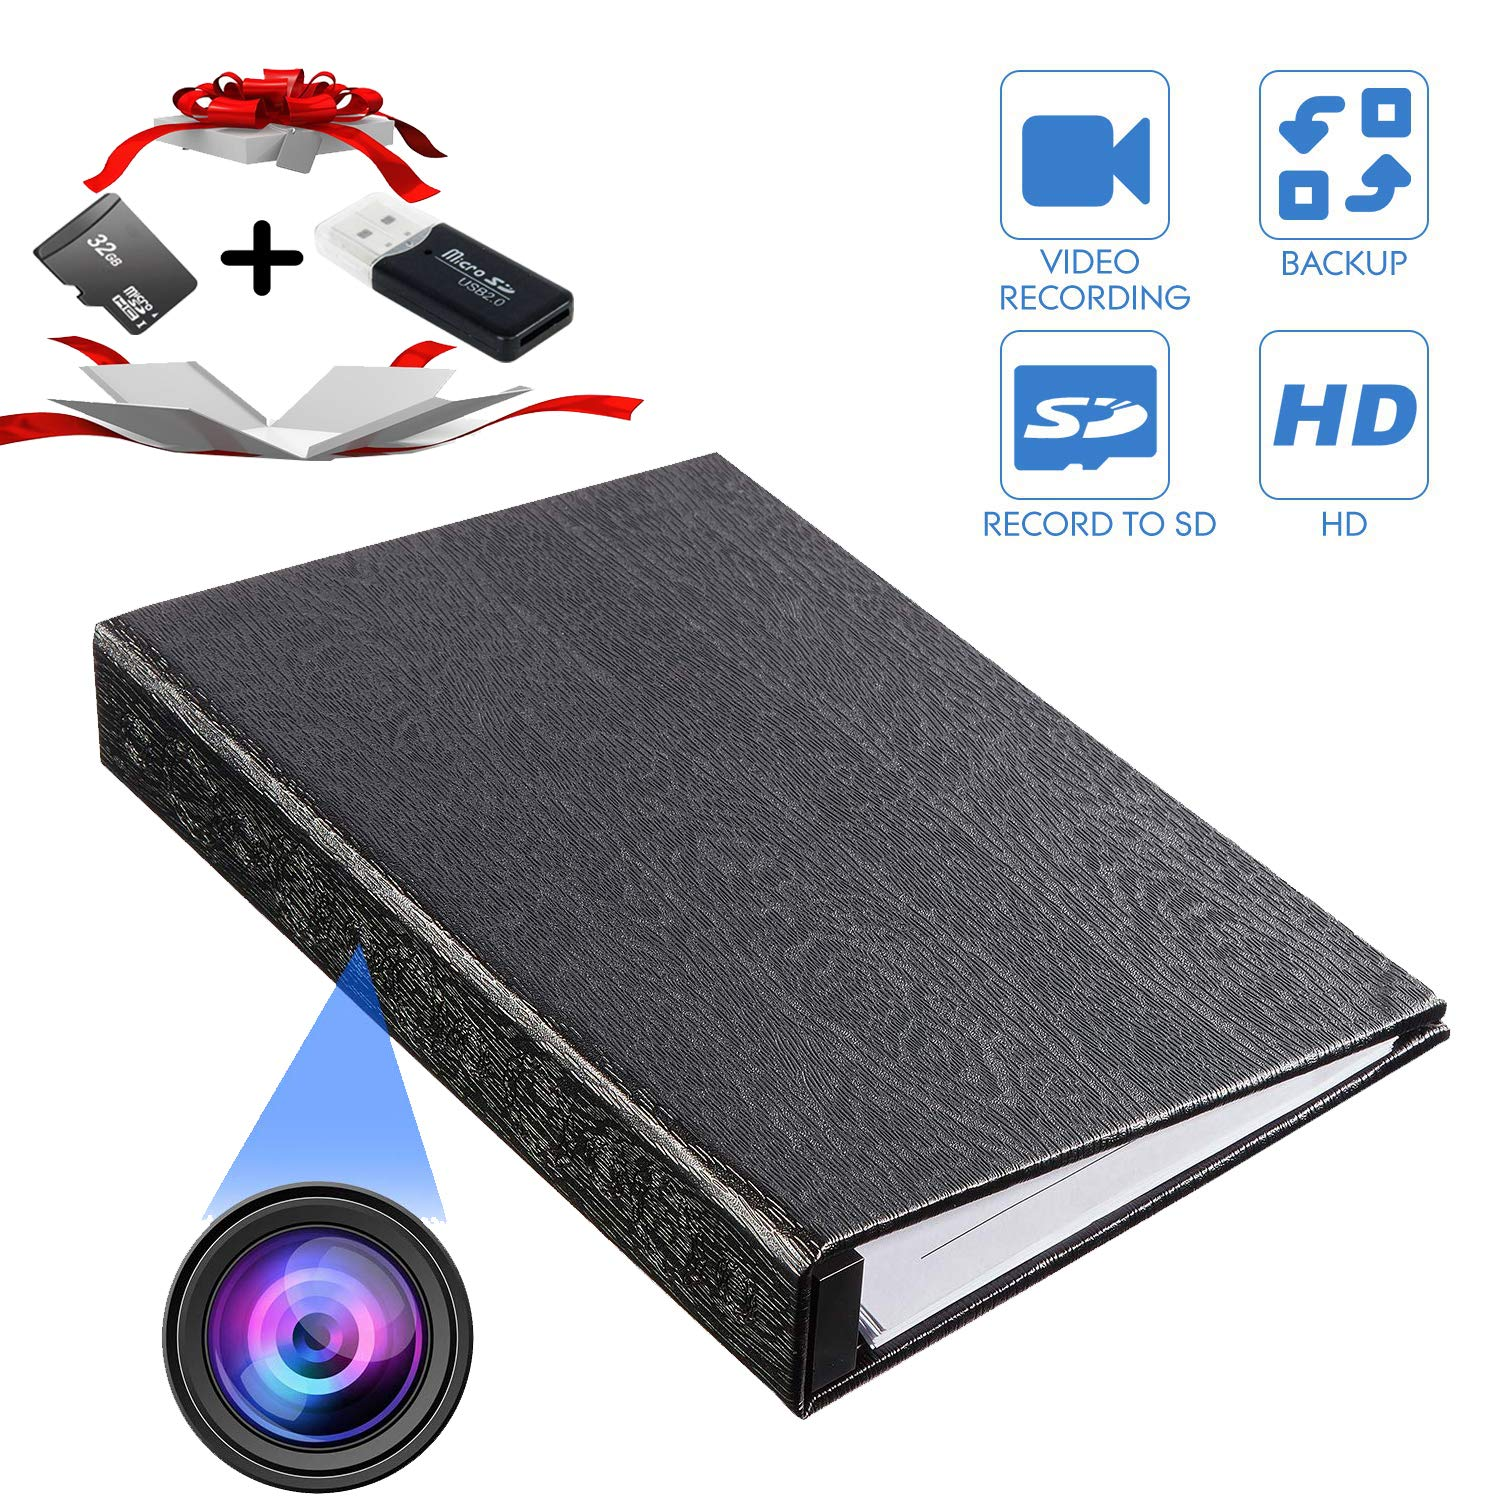 YTVISON Hidden Camera 1080P HD Book Battery Powered Camera Spy Cam Video Recorder- Loop Recording with 32GB Pre-Installed Surveillance Camera for Home Office Hotel Nanny -No WiFi Needed by YTVISON